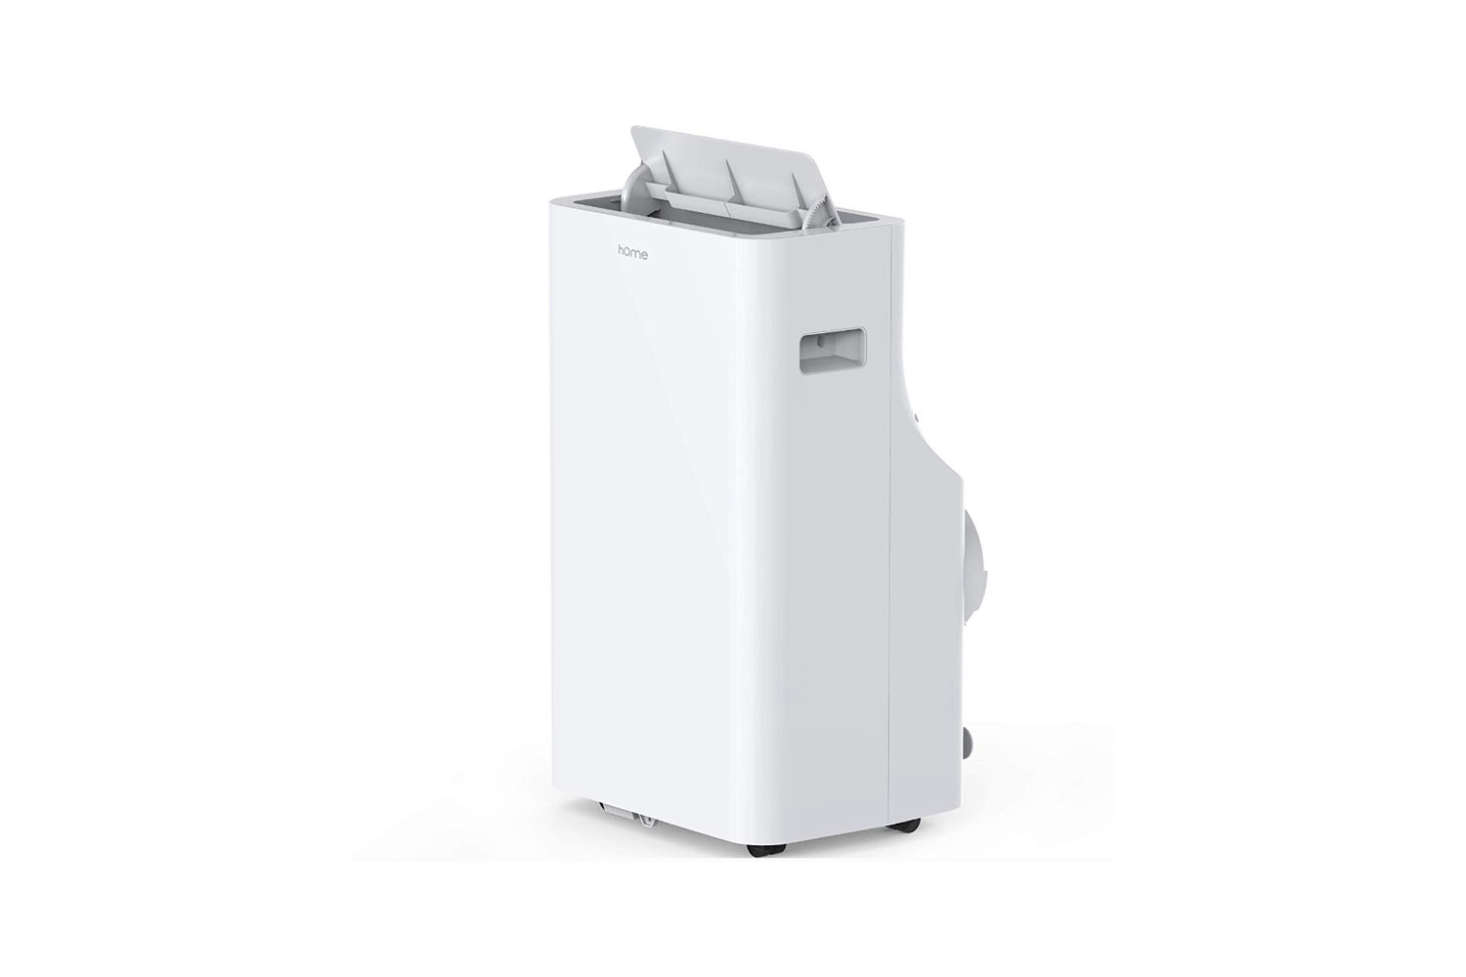 The Homelabs Portable Air Conditioner ,000 BTU Quiet AC with Removable Washable Filter is $549.99 at Walmart.